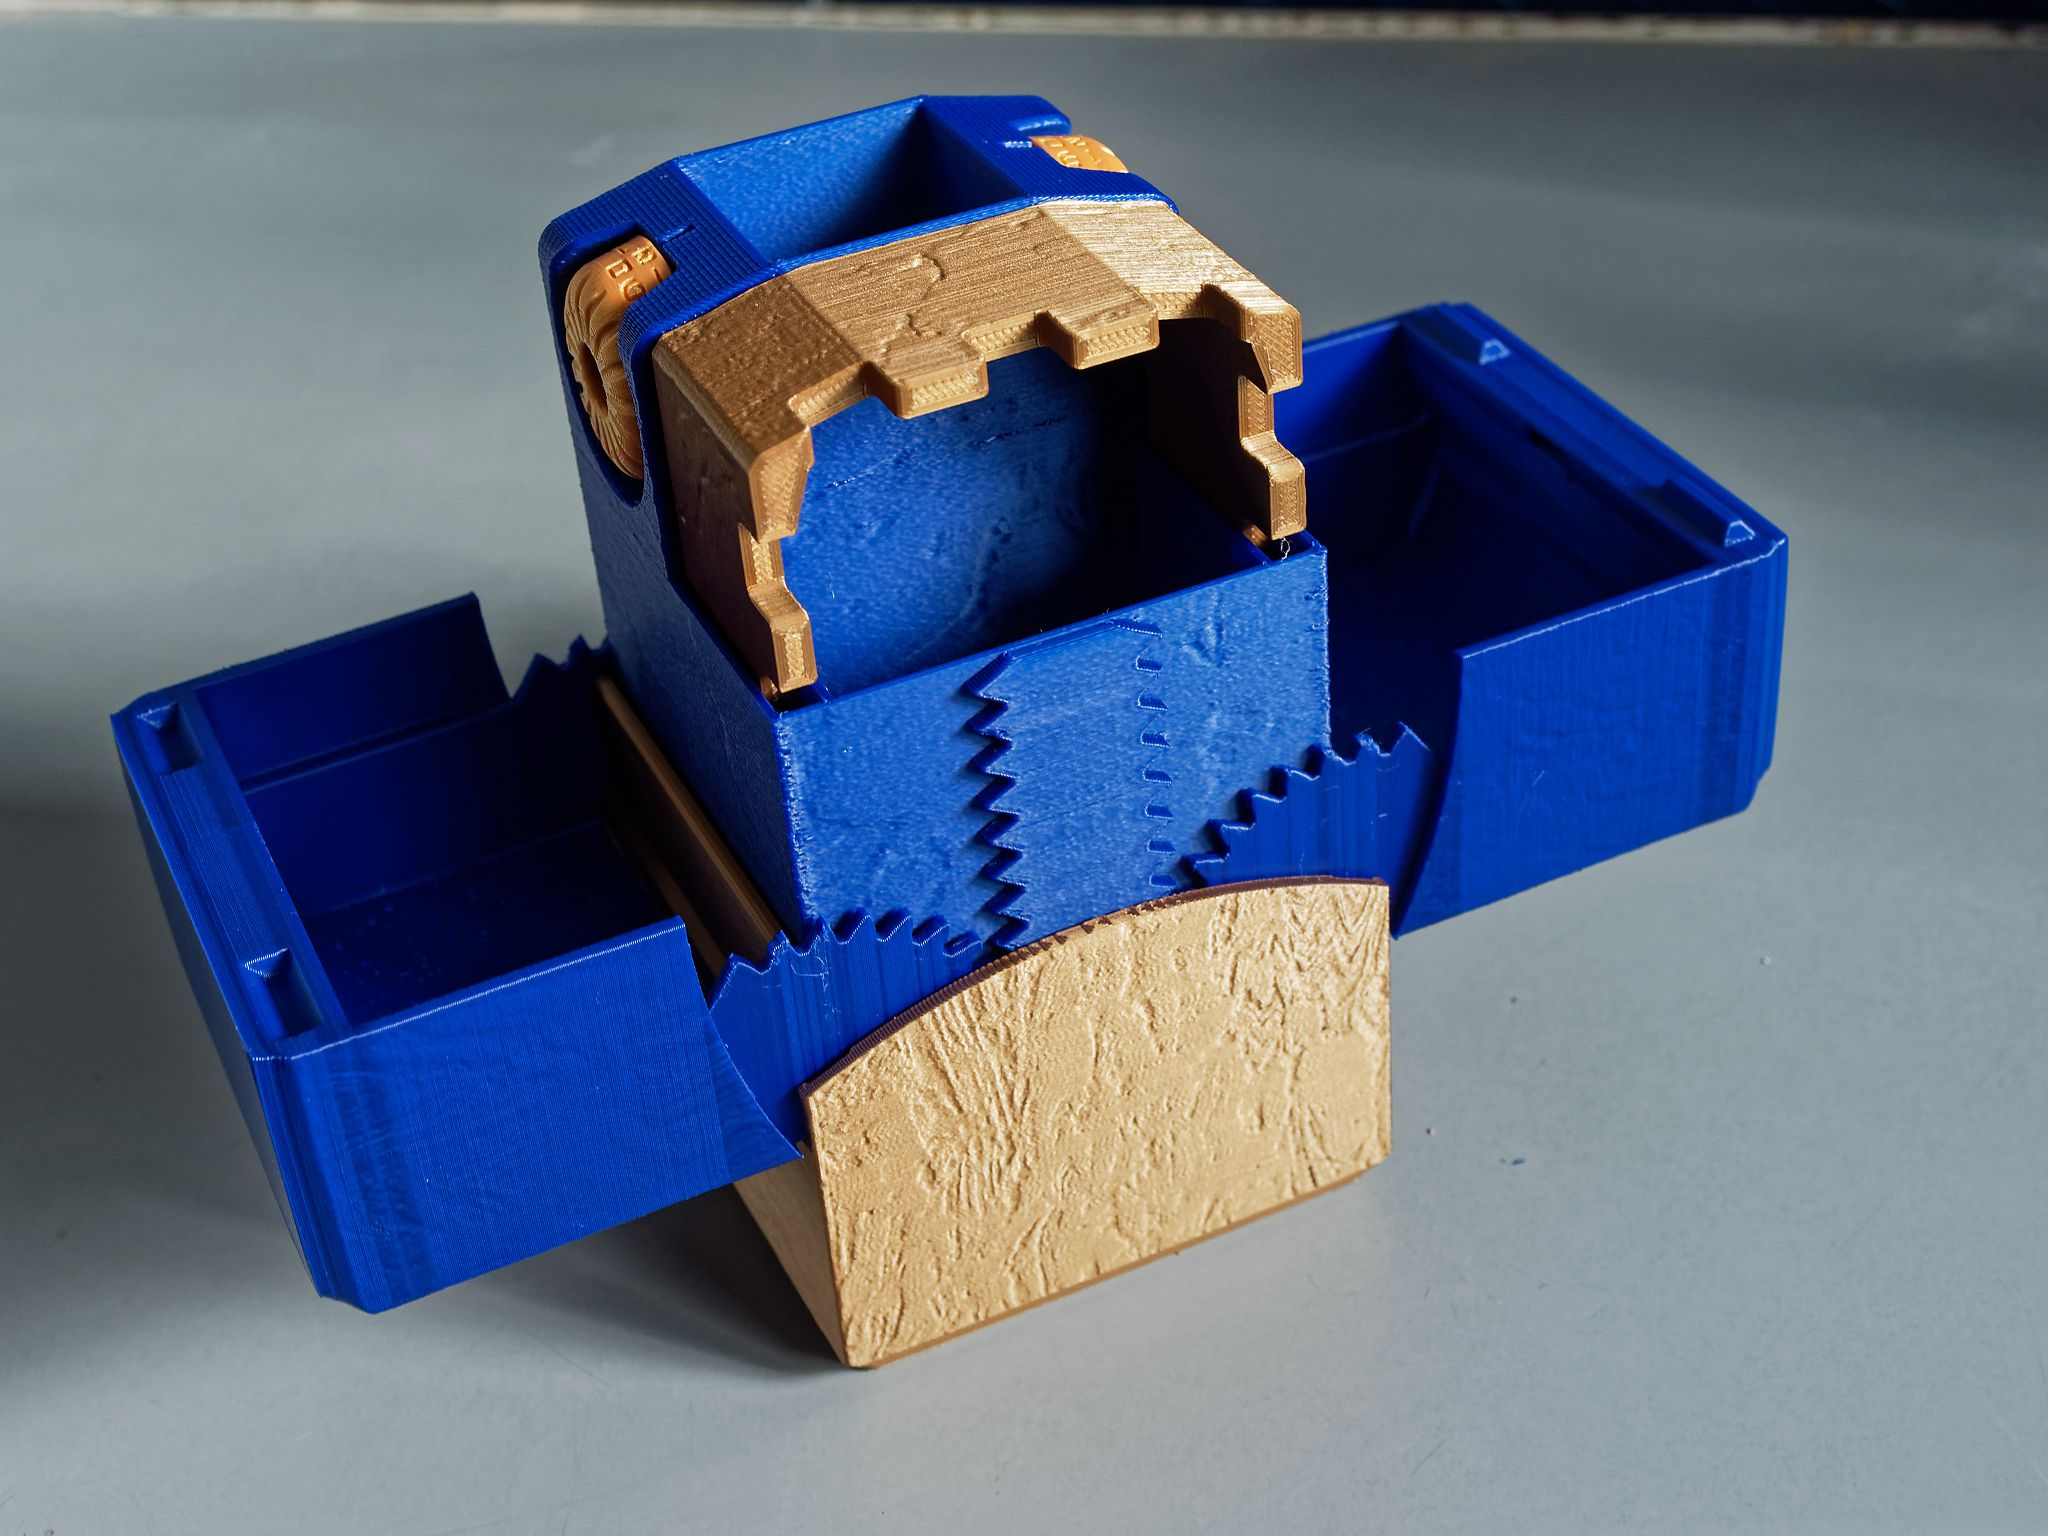 P3146237_DxO2.jpg Download STL file Folding dice tower with life counter • Design to 3D print, CartesianCreationsAU